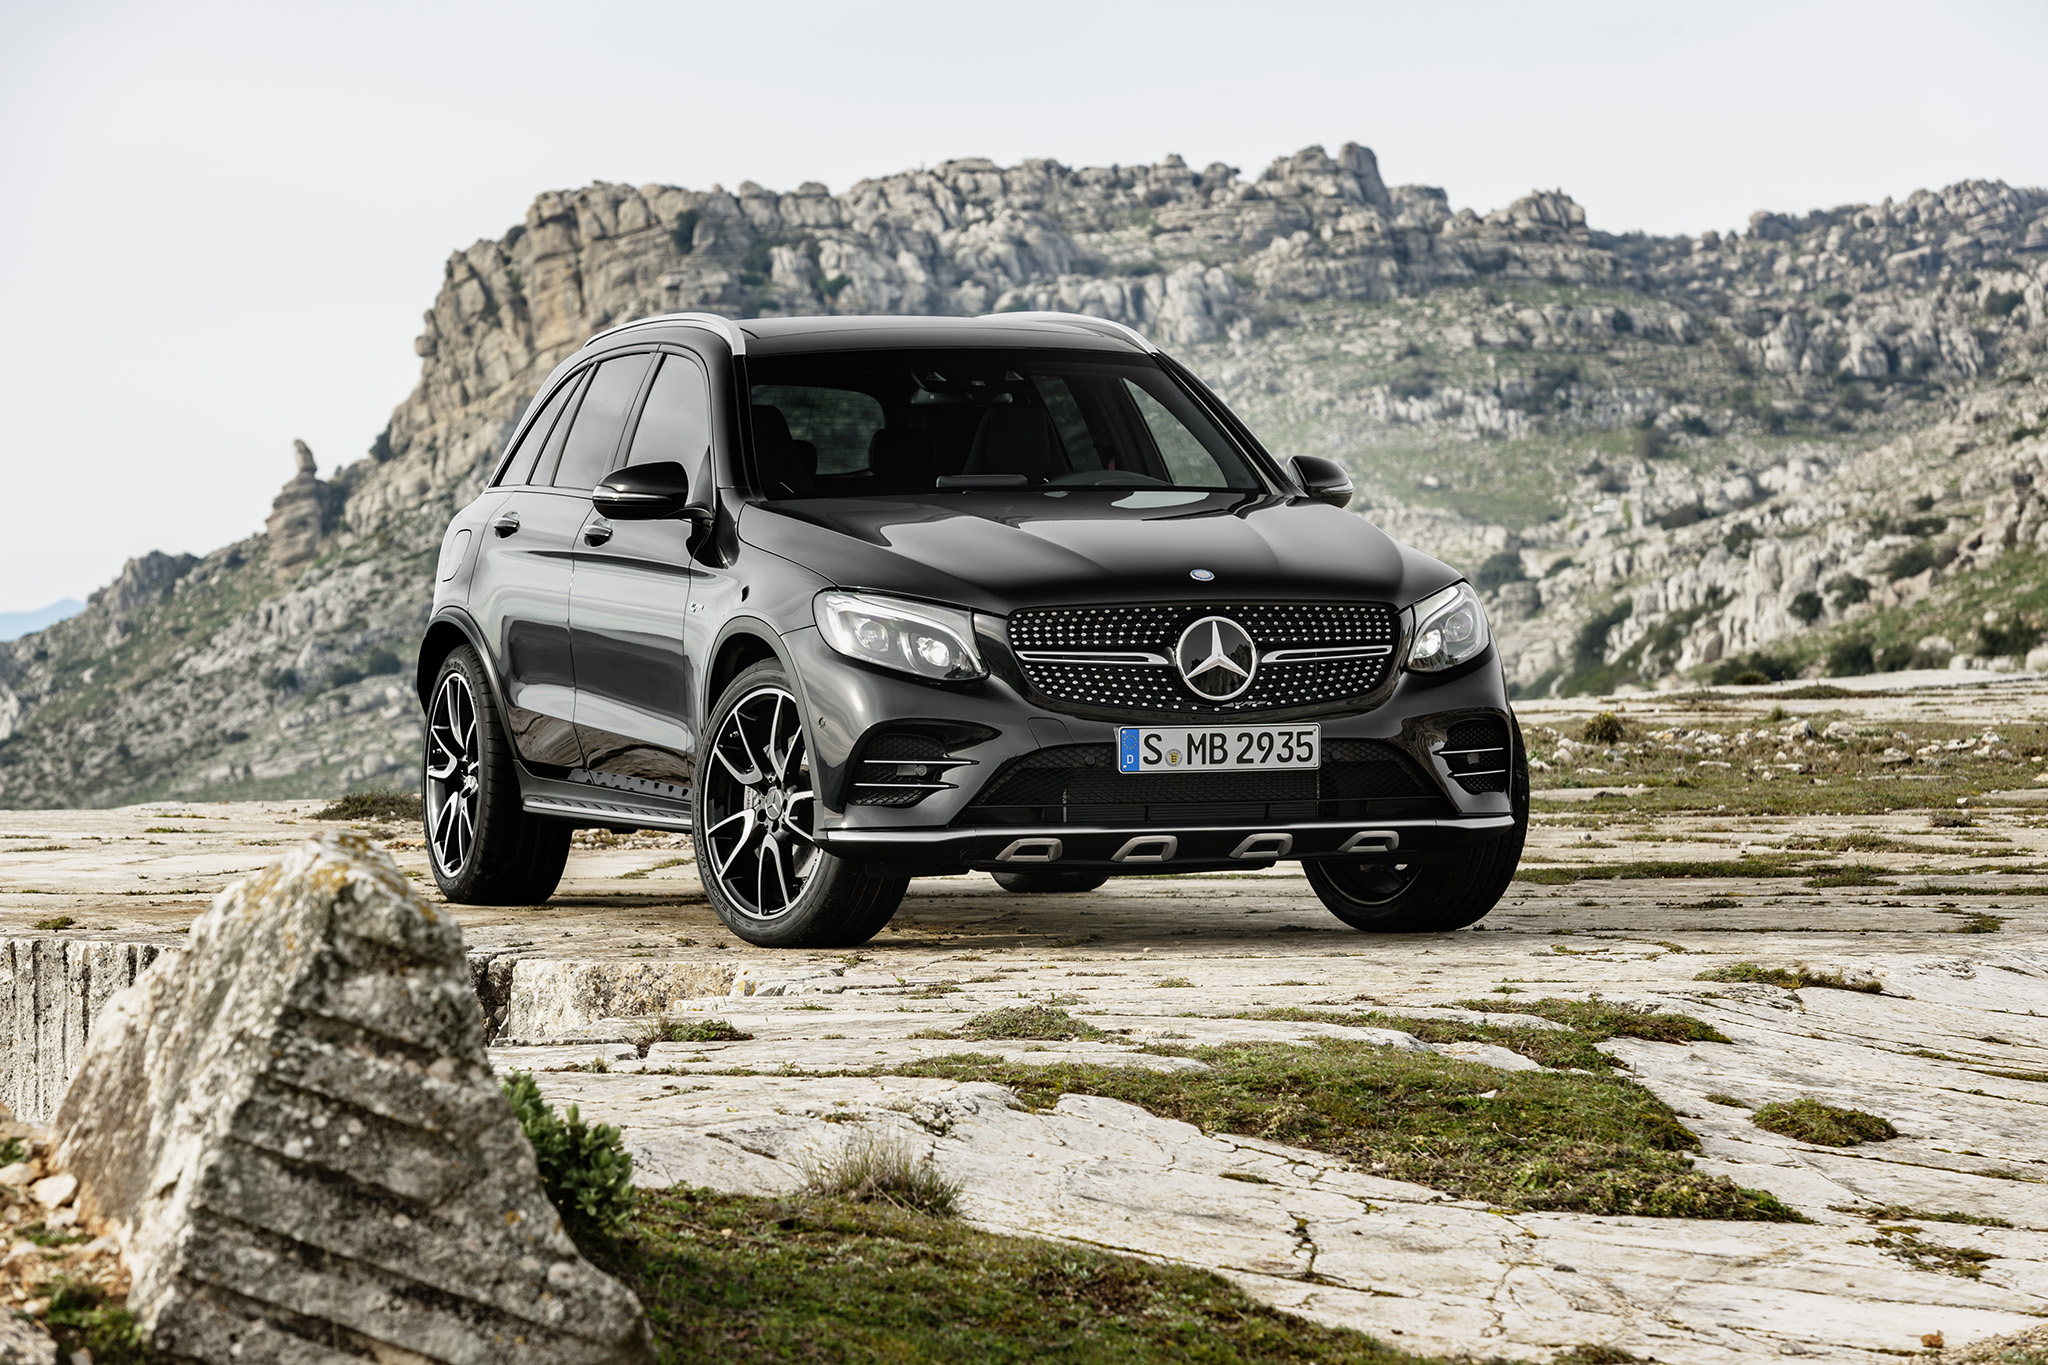 Most Reliable: Mercedes-Benz GLC-Class